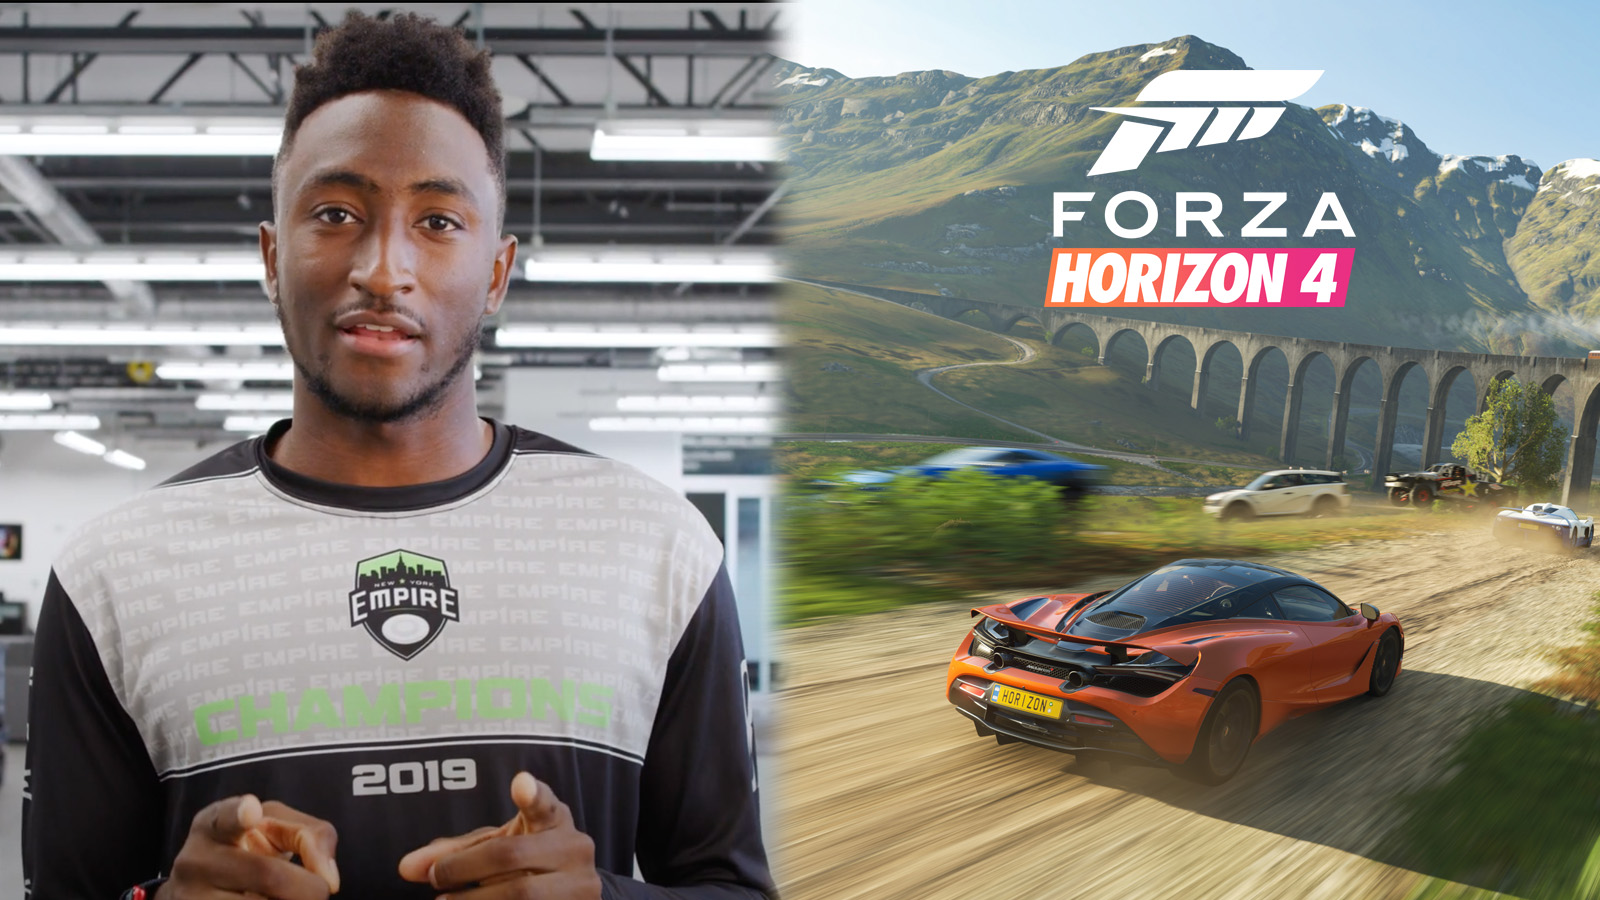 Marques Brownlee plays Forza Horizon 4 in 8K